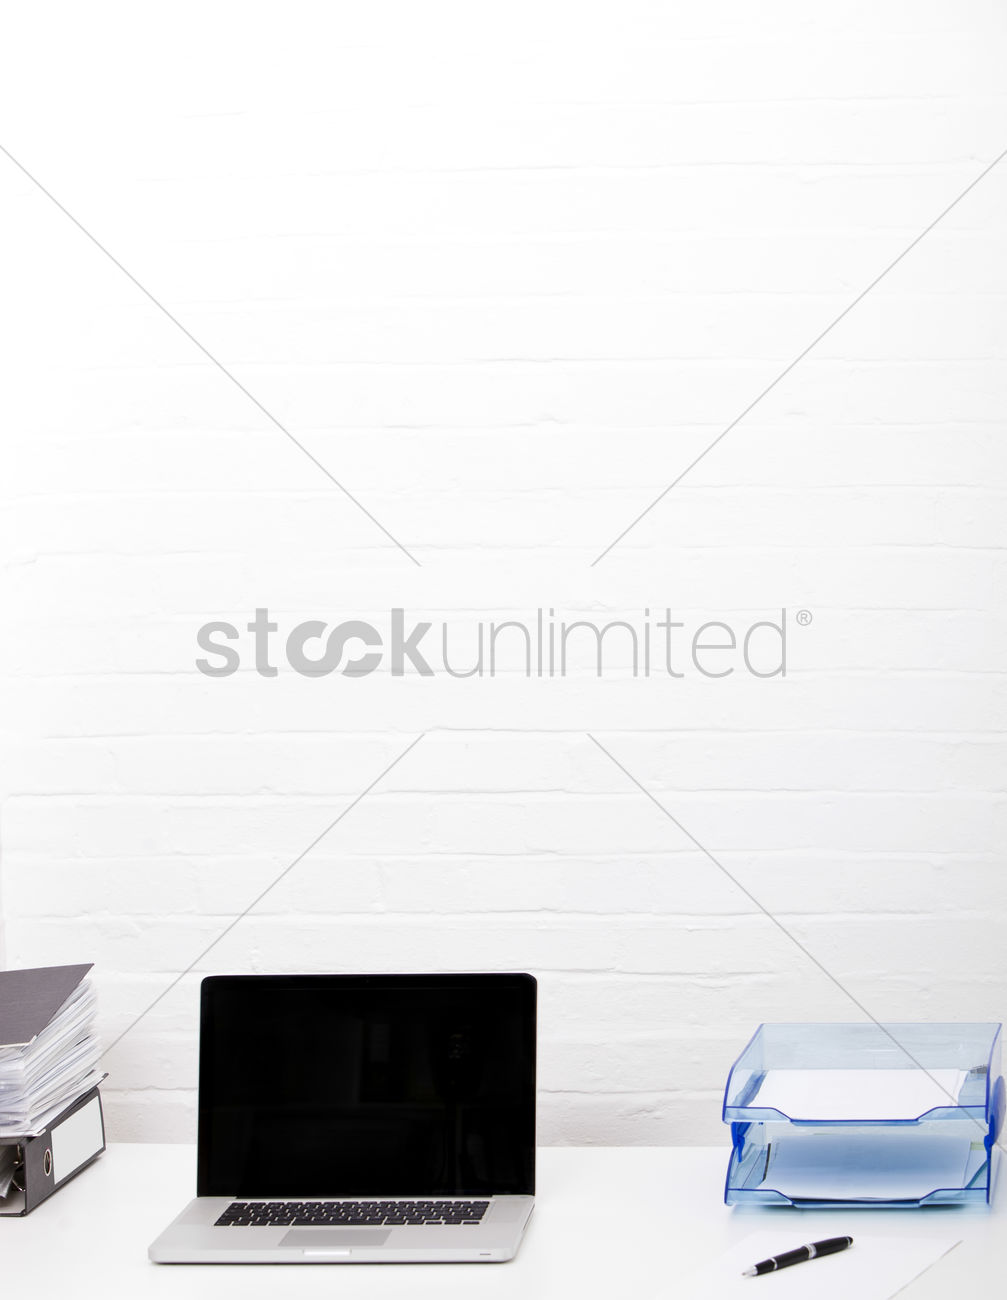 Laptop And Paper Tray On Office Desk Stock Photo